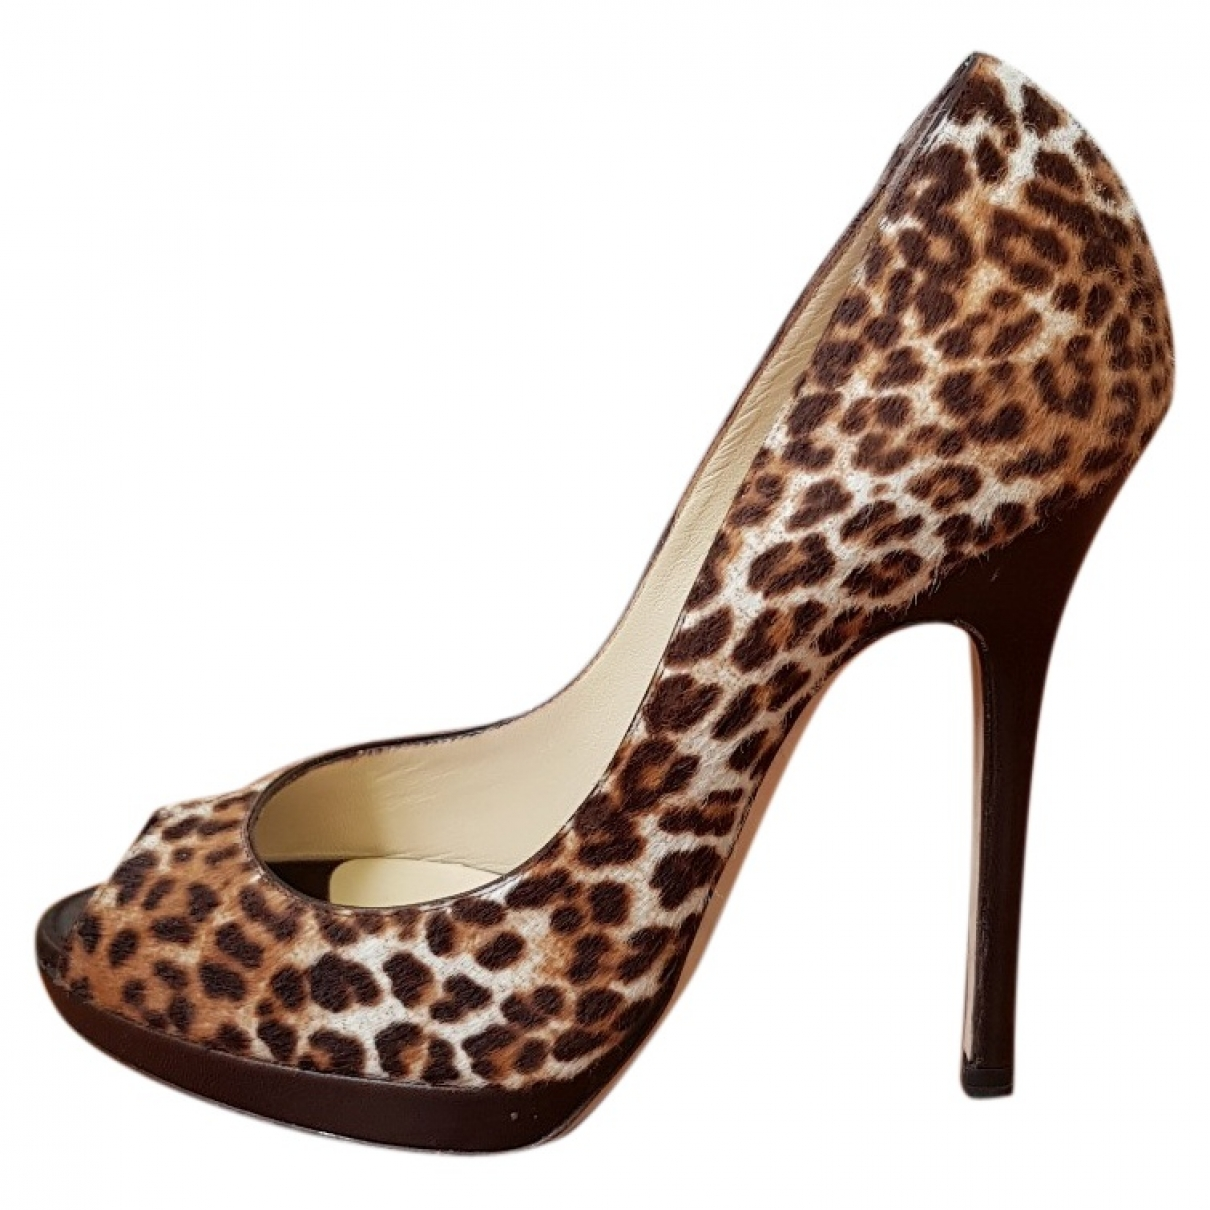 Jimmy Choo \N Pony-style calfskin Heels for Women 35.5 EU